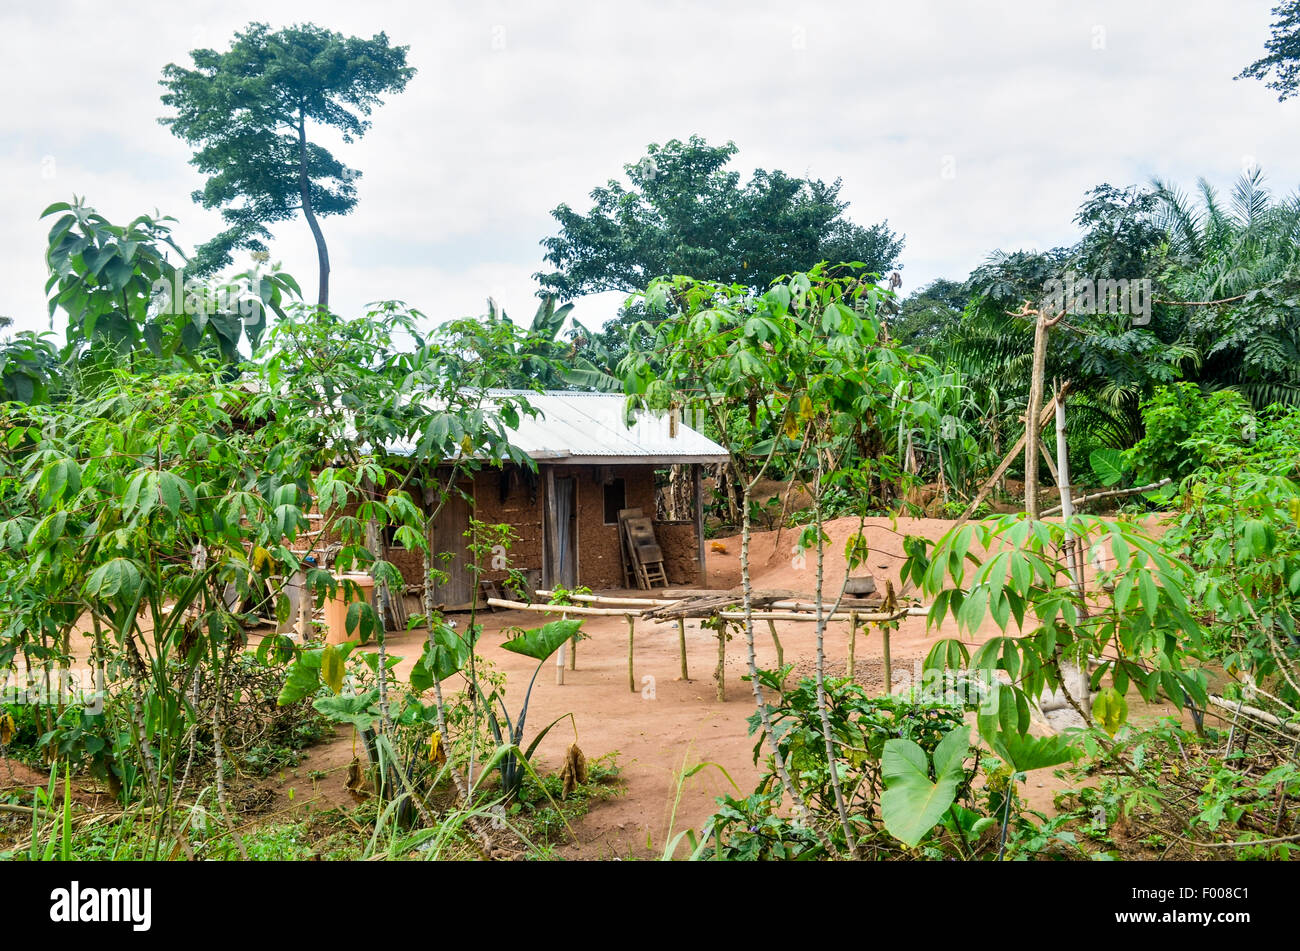 A mud house surrounded by cassava plants in the countryside of Ghana - Stock Image